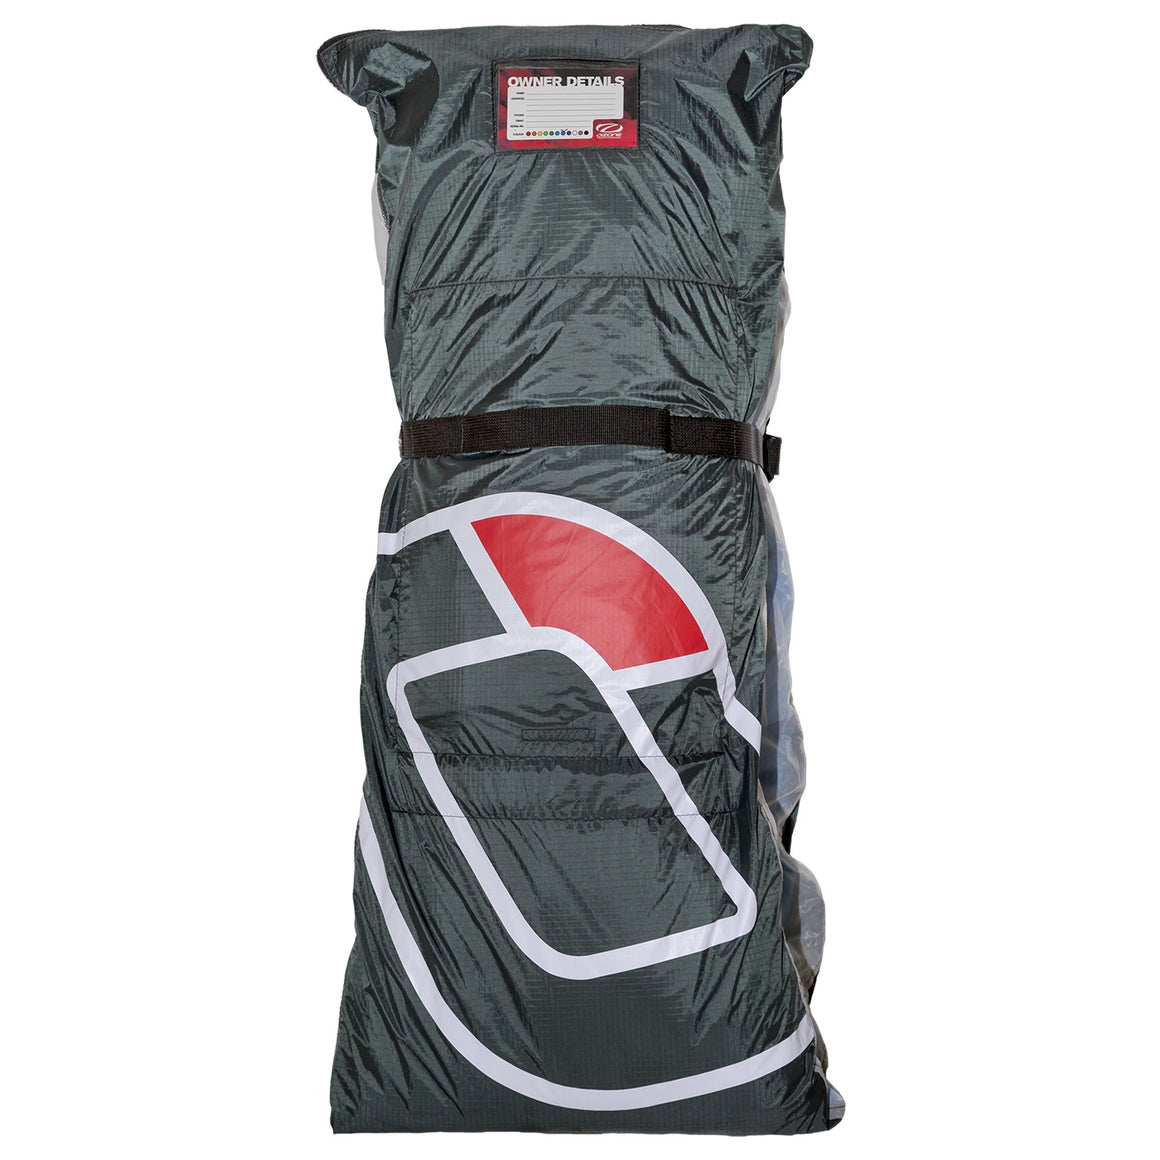 Ozone Closed Cell Compressor Bag